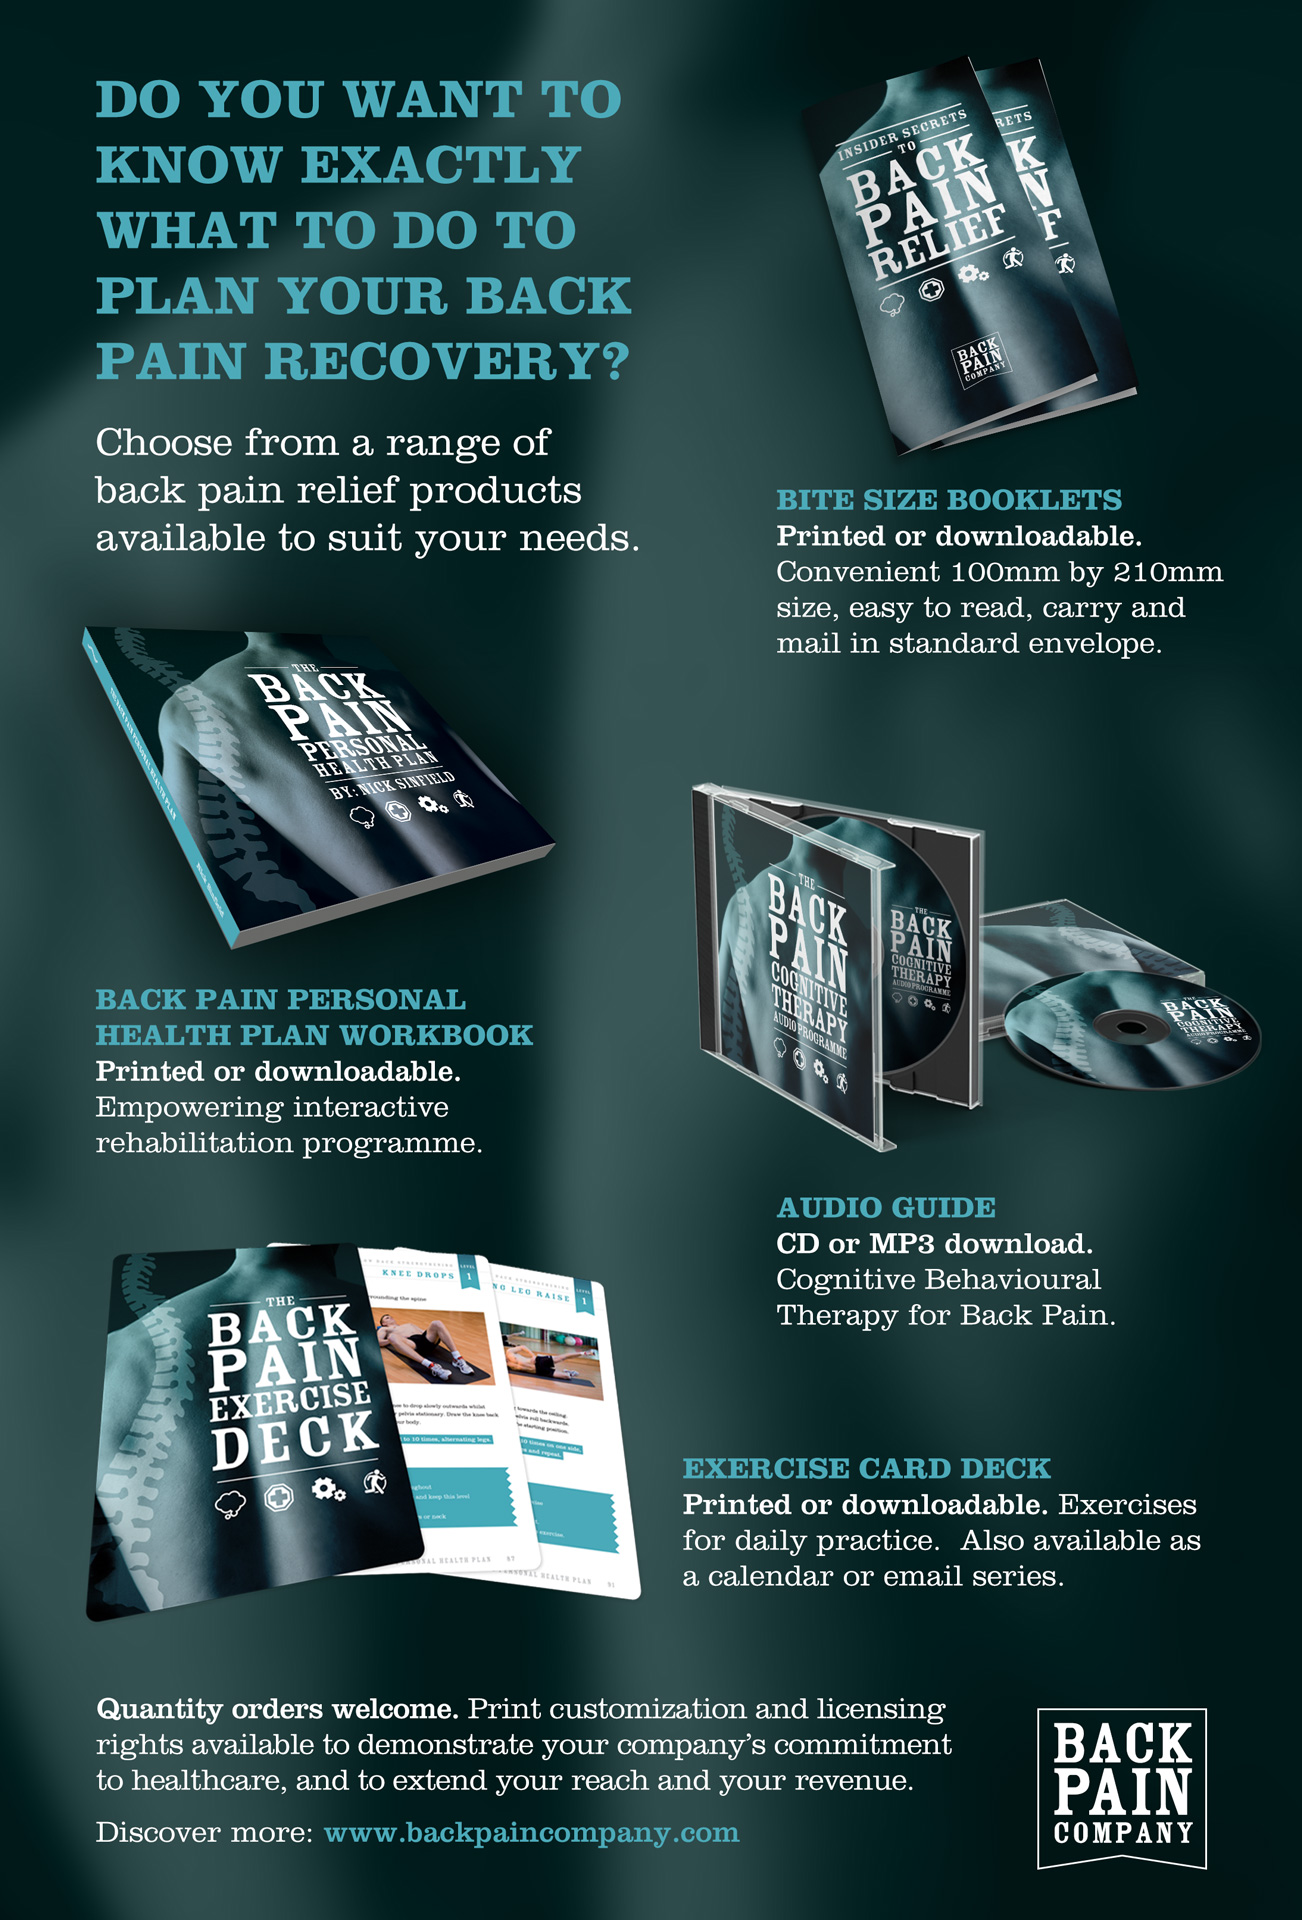 Range of promotions items for the Back Pain Company